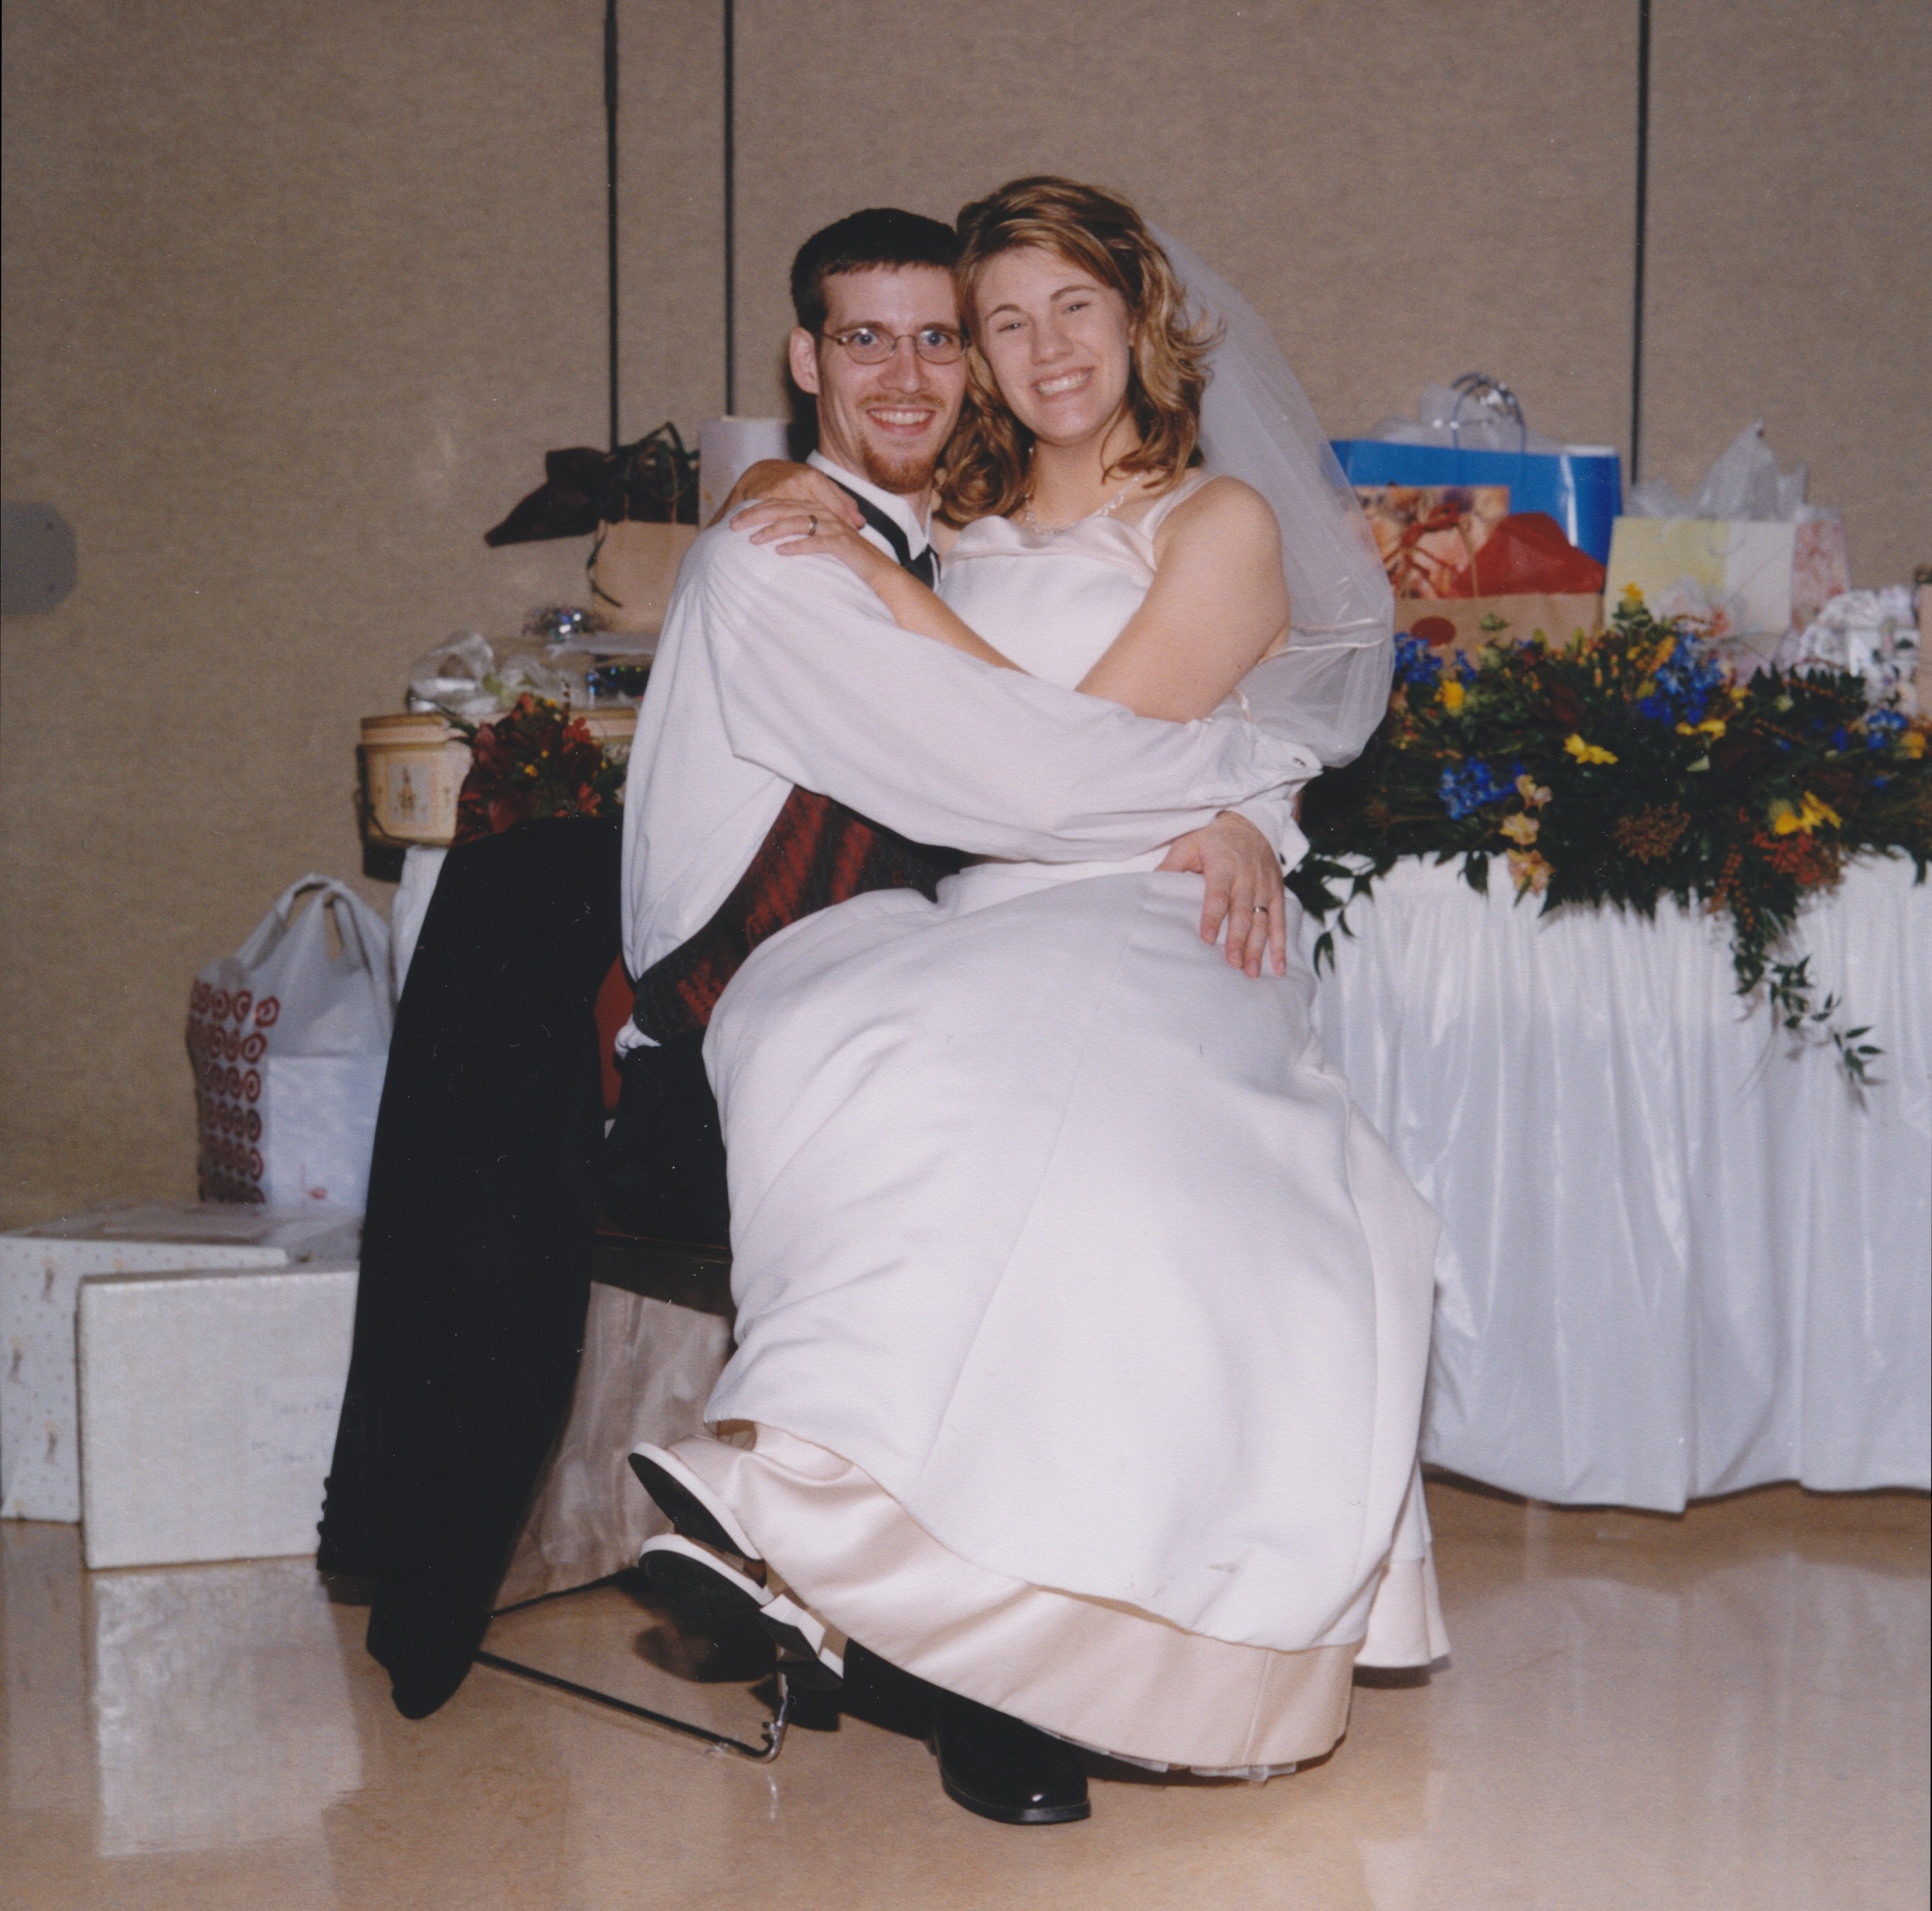 We got married before Pinterest. That's why there are no mason jars or paper cranes.